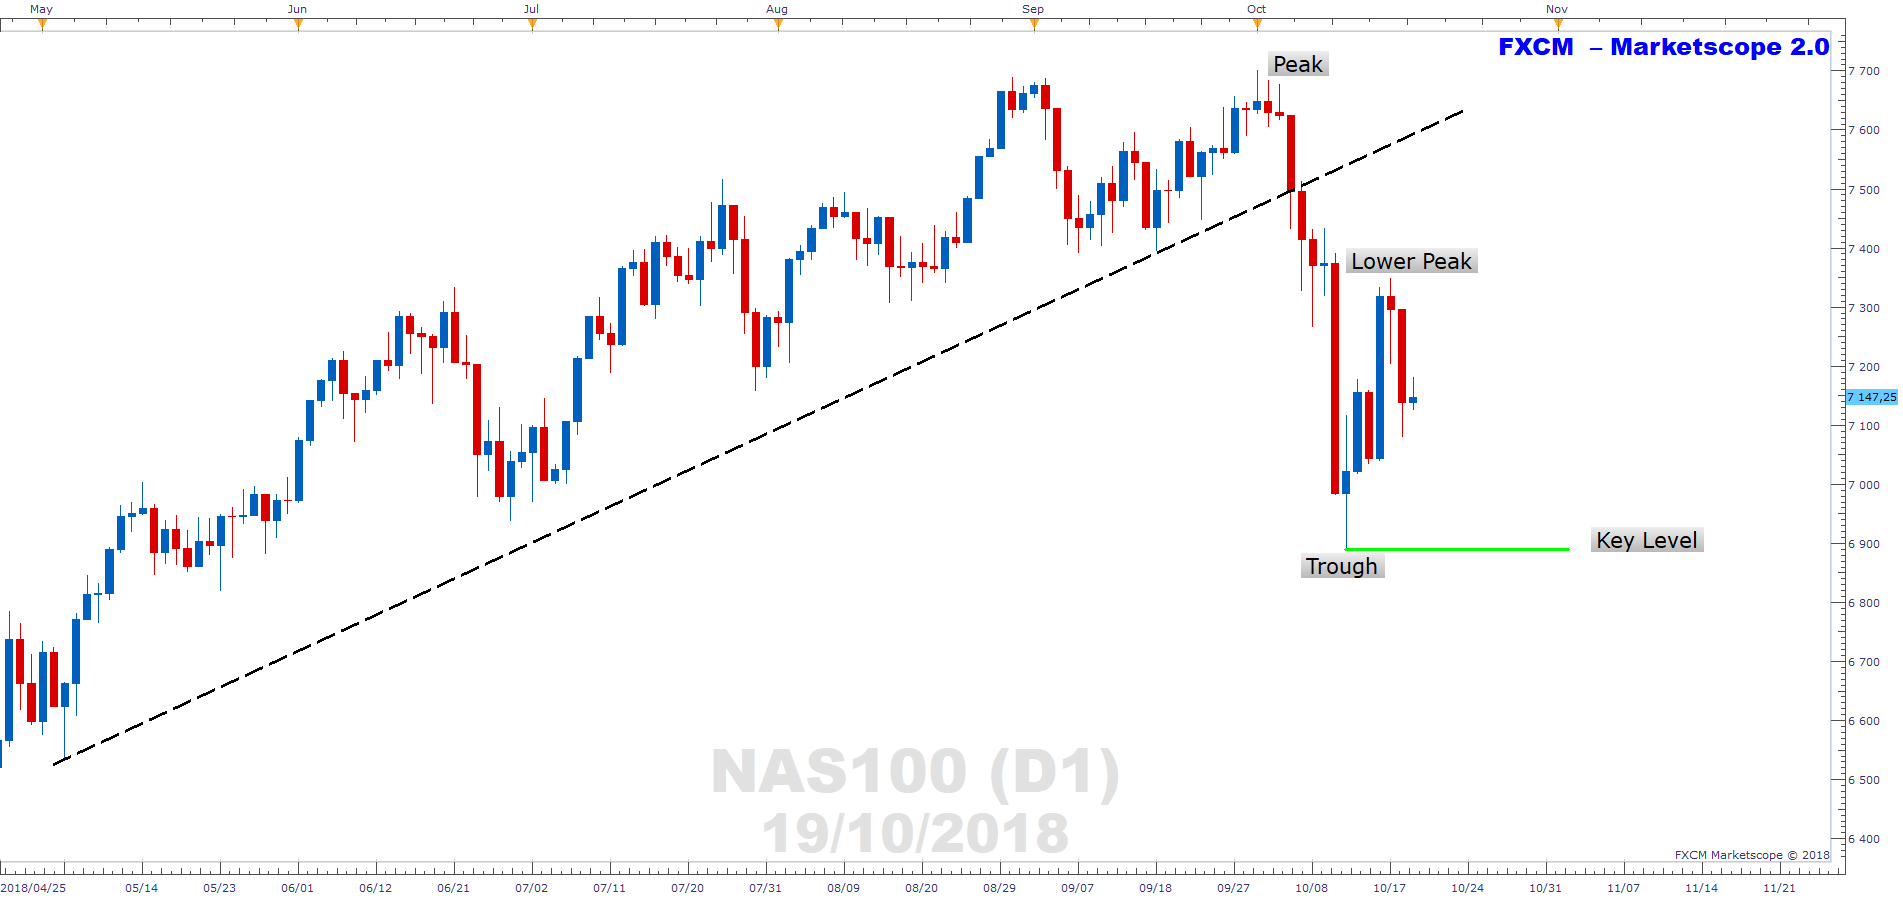 Nasdaq charts lower peak